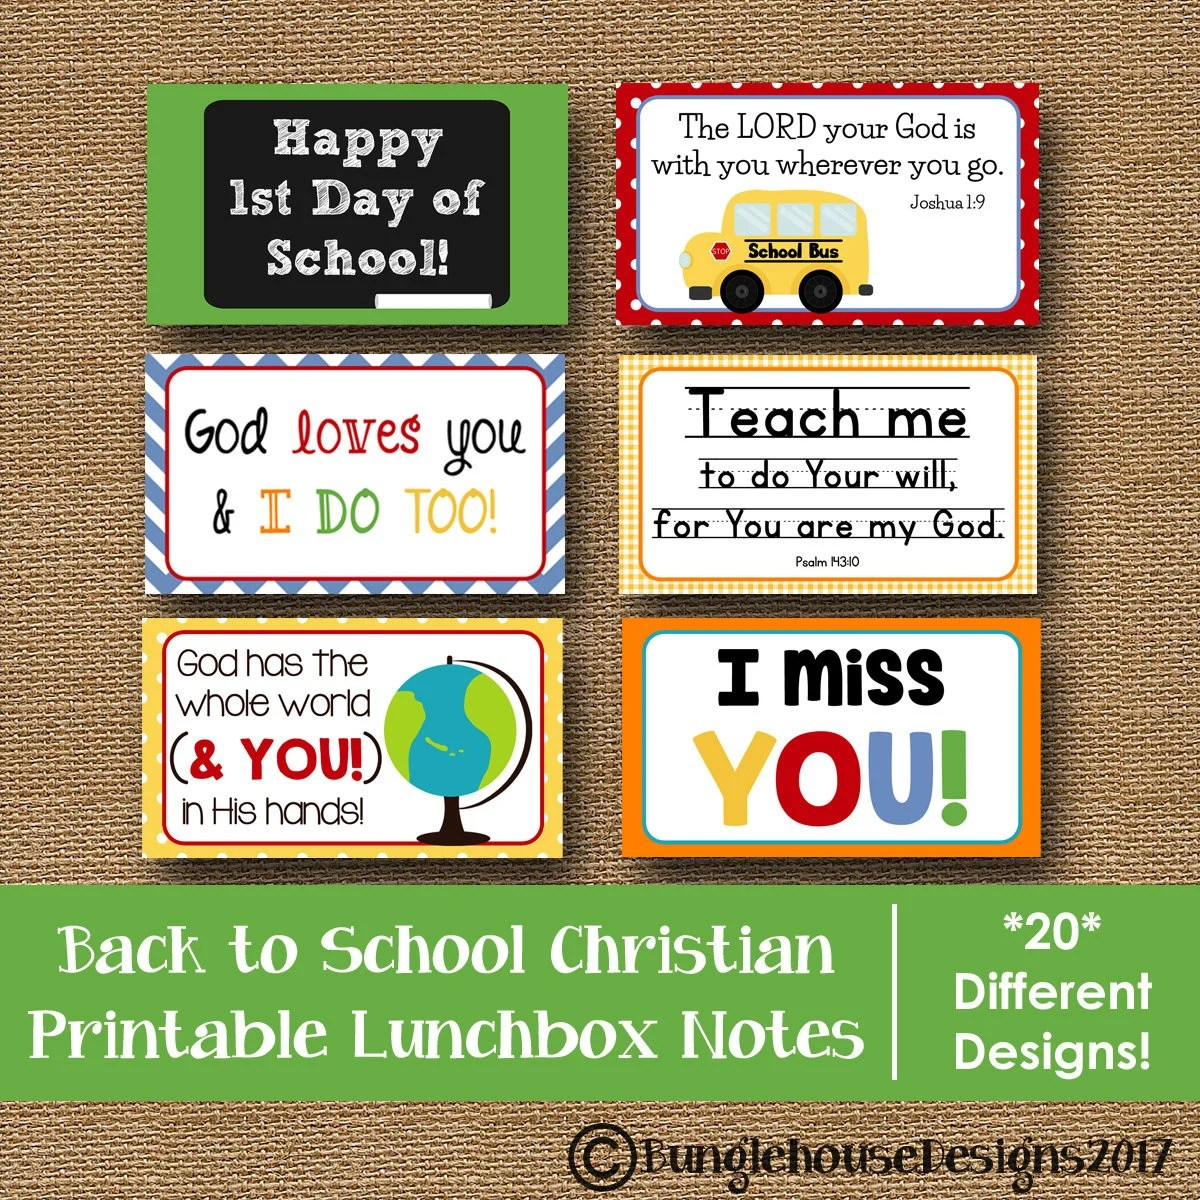 Back to School Lunch Box Notes Printable Lunchbox Notes for Etsy